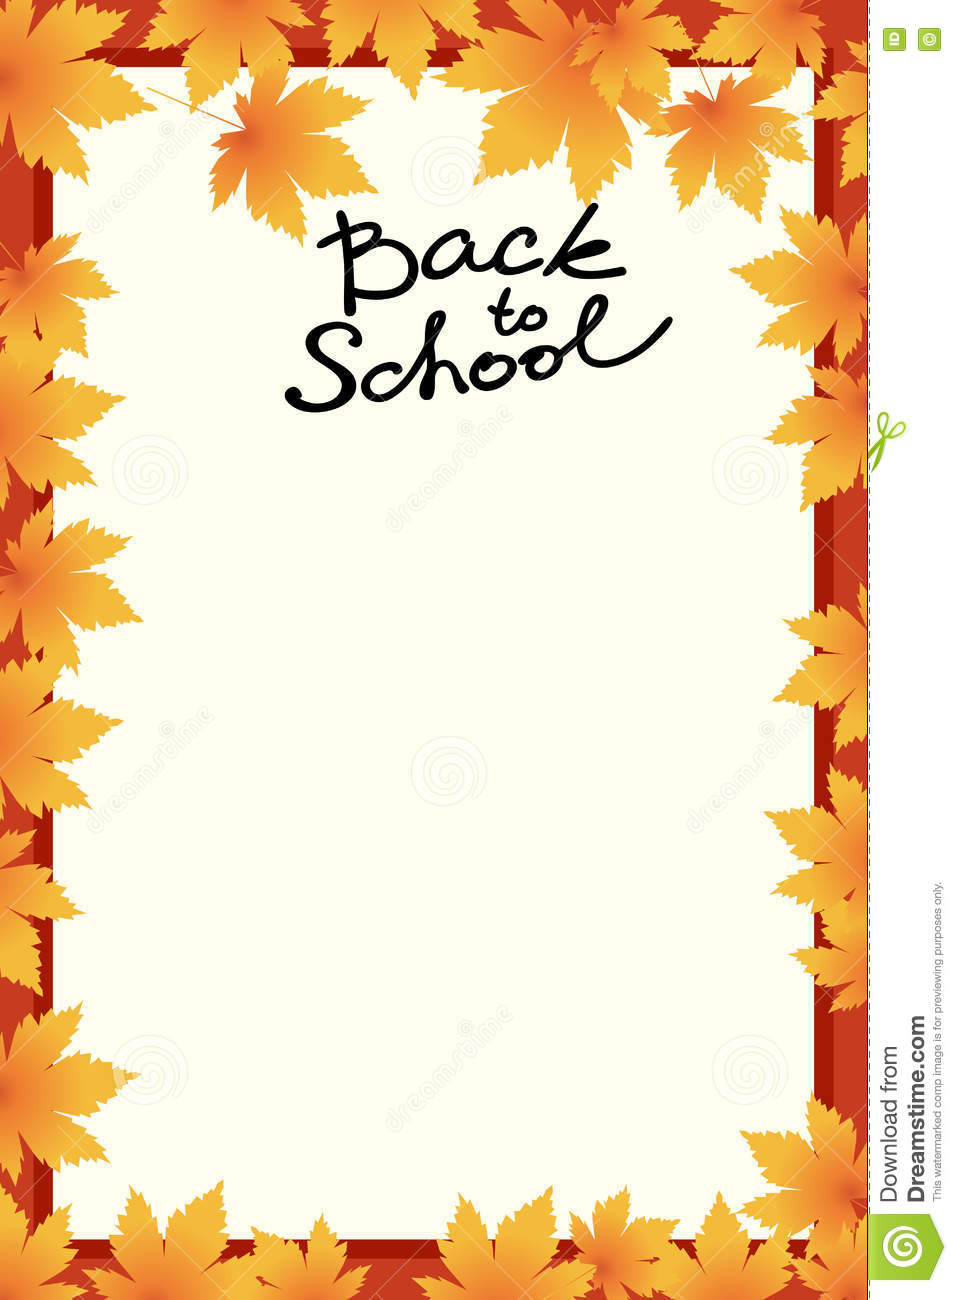 School Template Invitation Card Stock Vector Illustration of autumn banner: 75576035